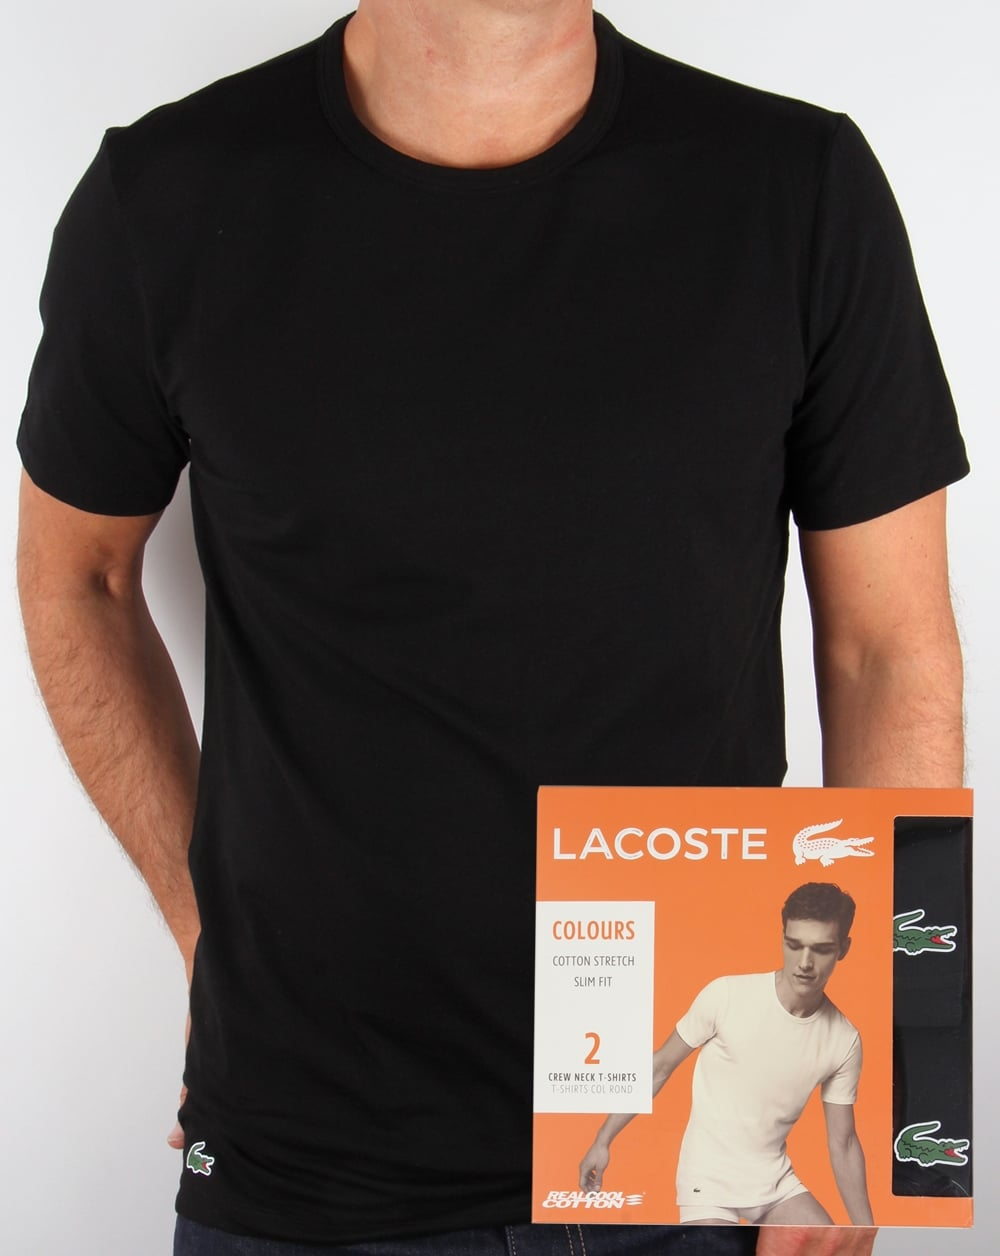 Lacoste Twin Pack Crew Neck T Shirts in White short sleeved tee